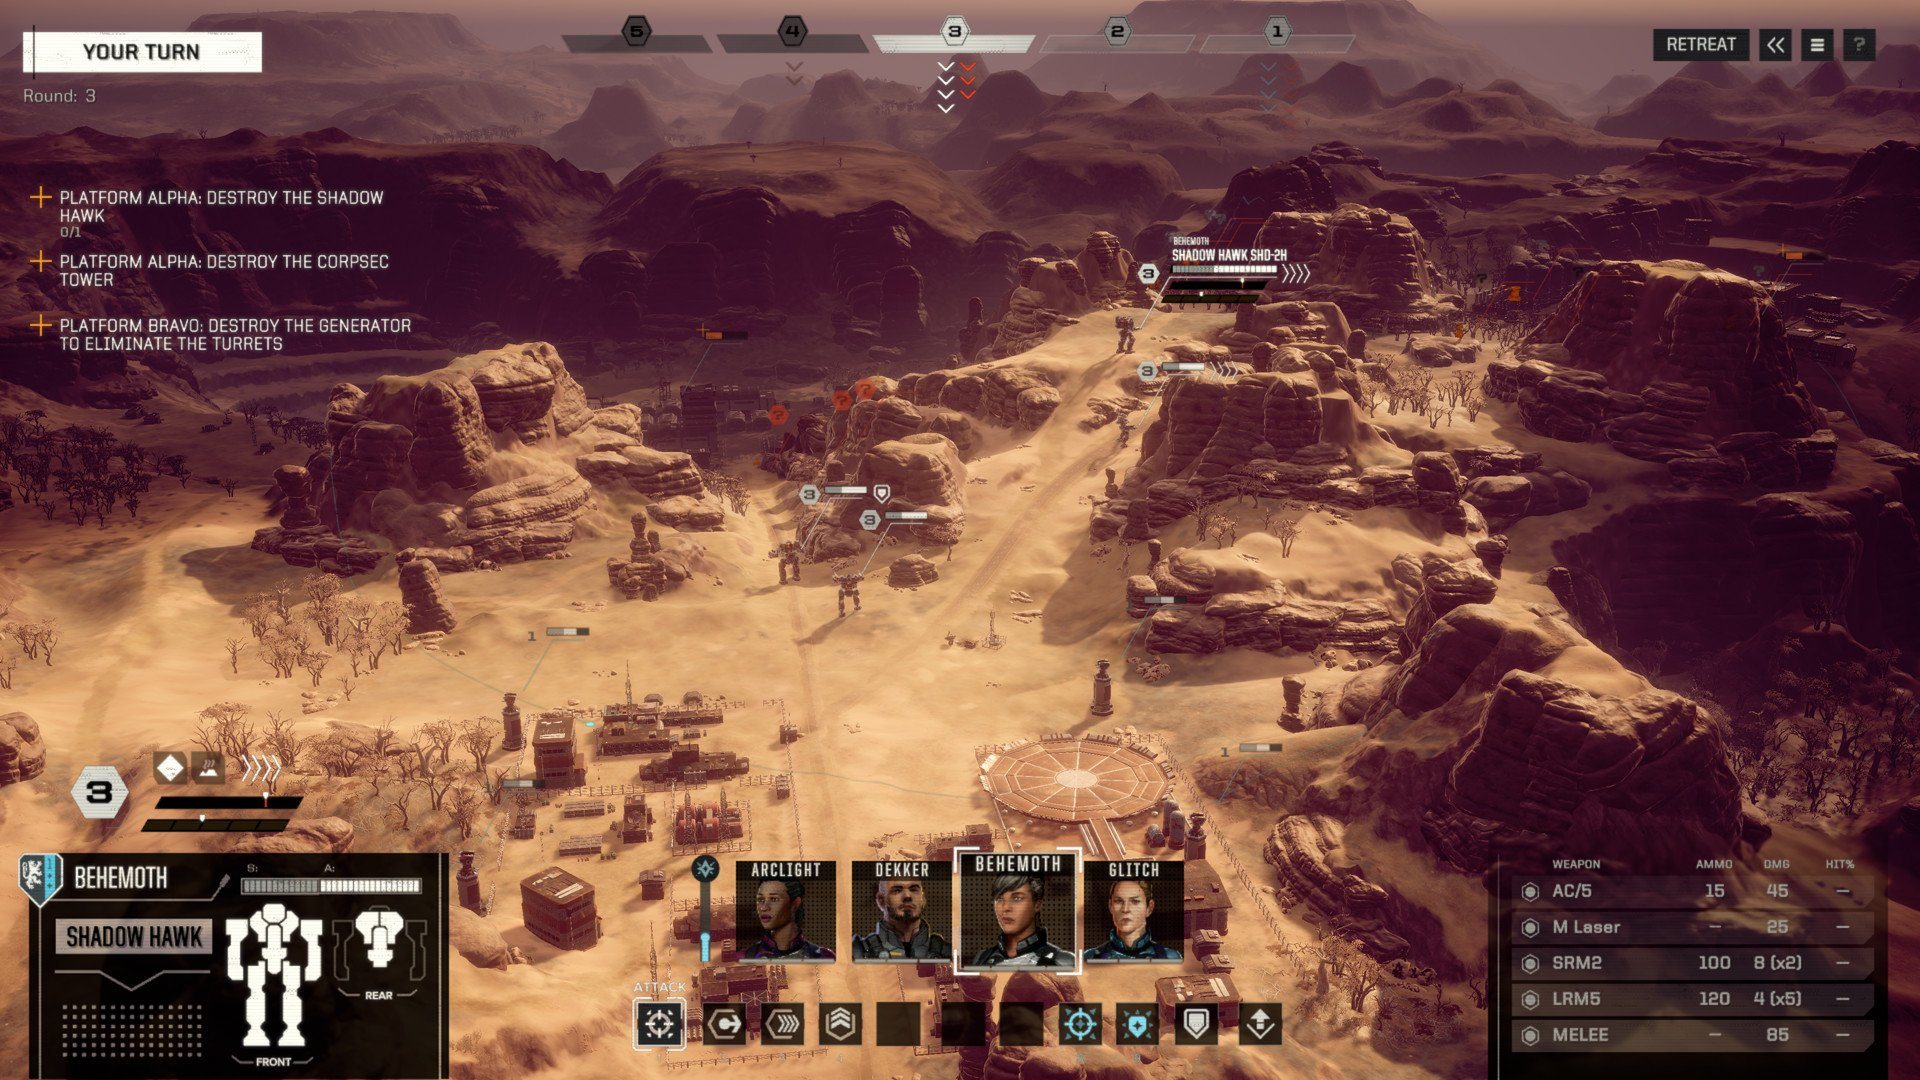 BATTLETECH game image